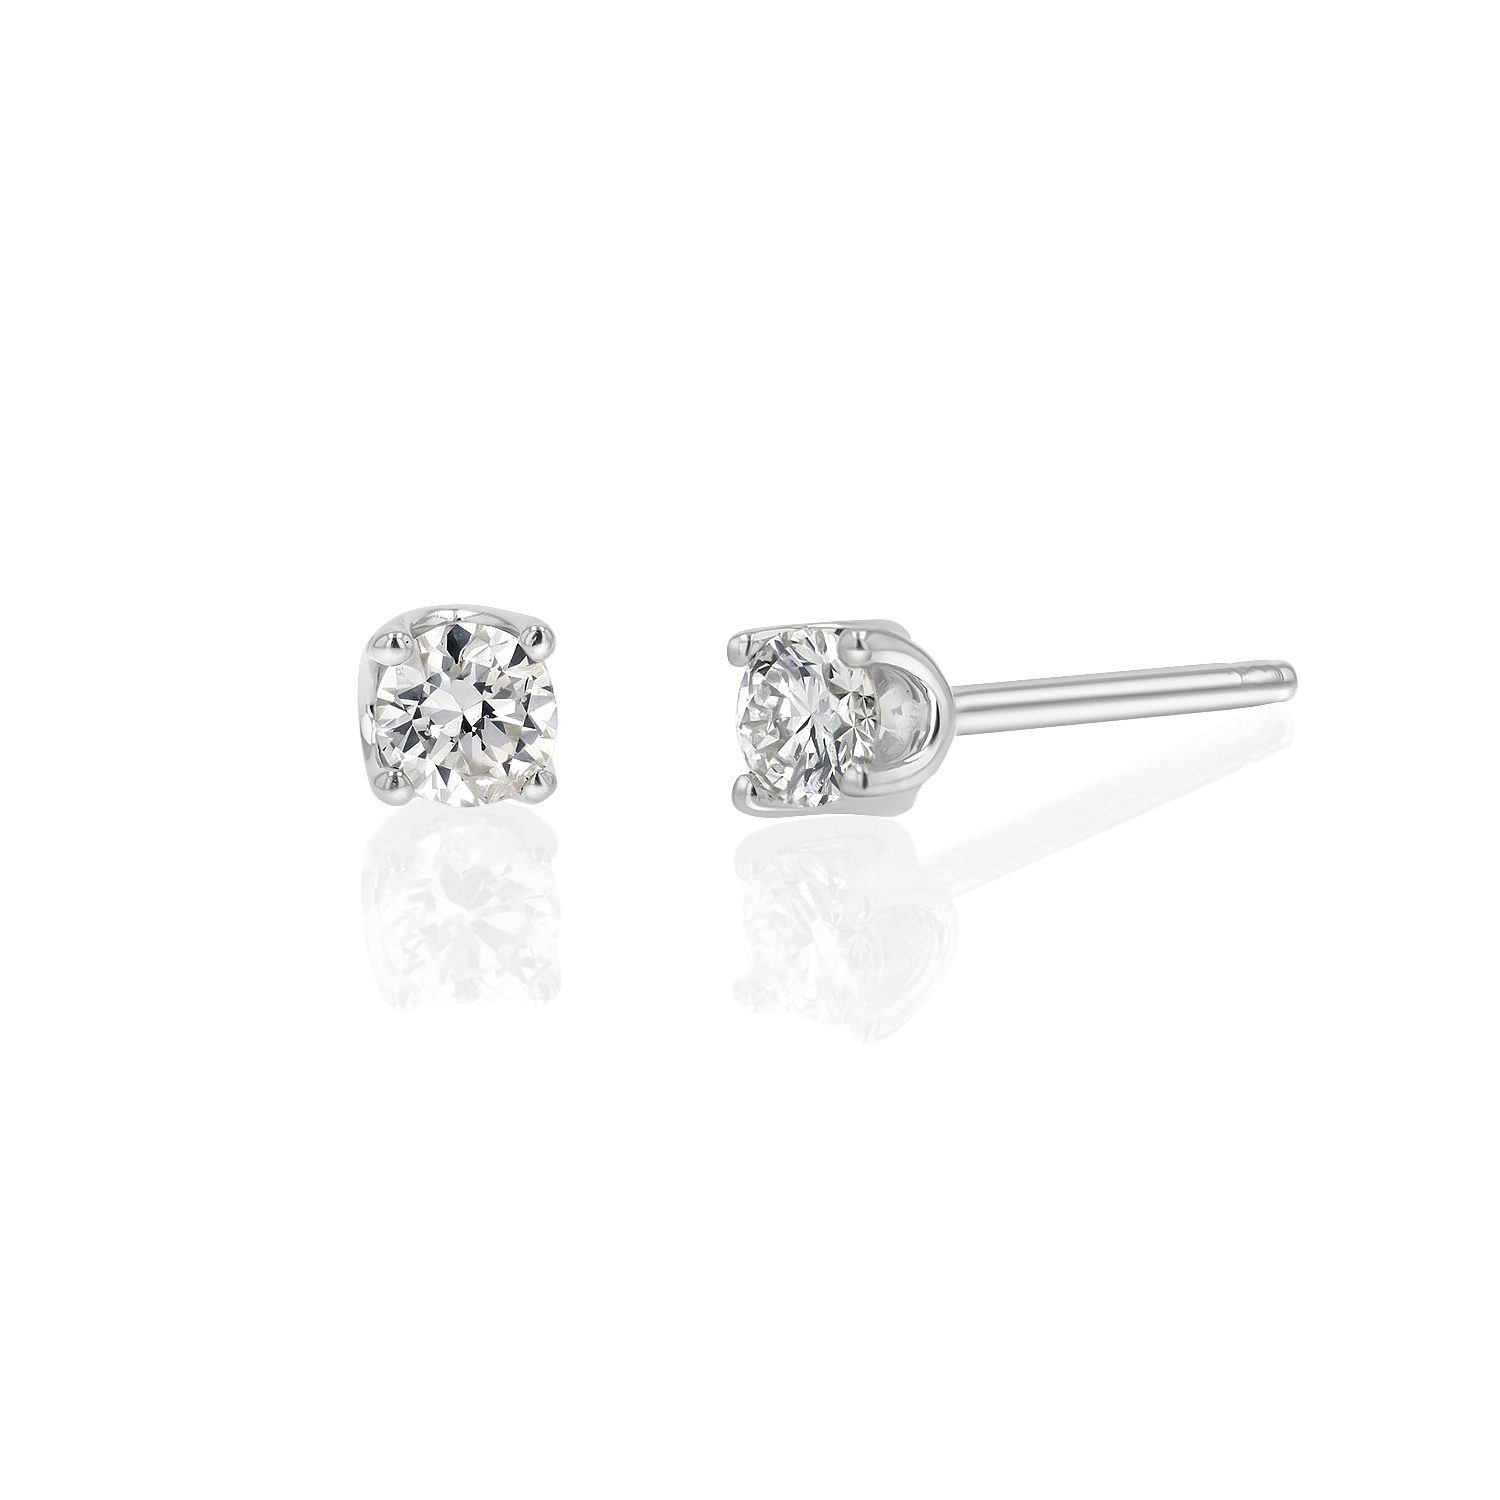 14K Gold Solitaire Studs